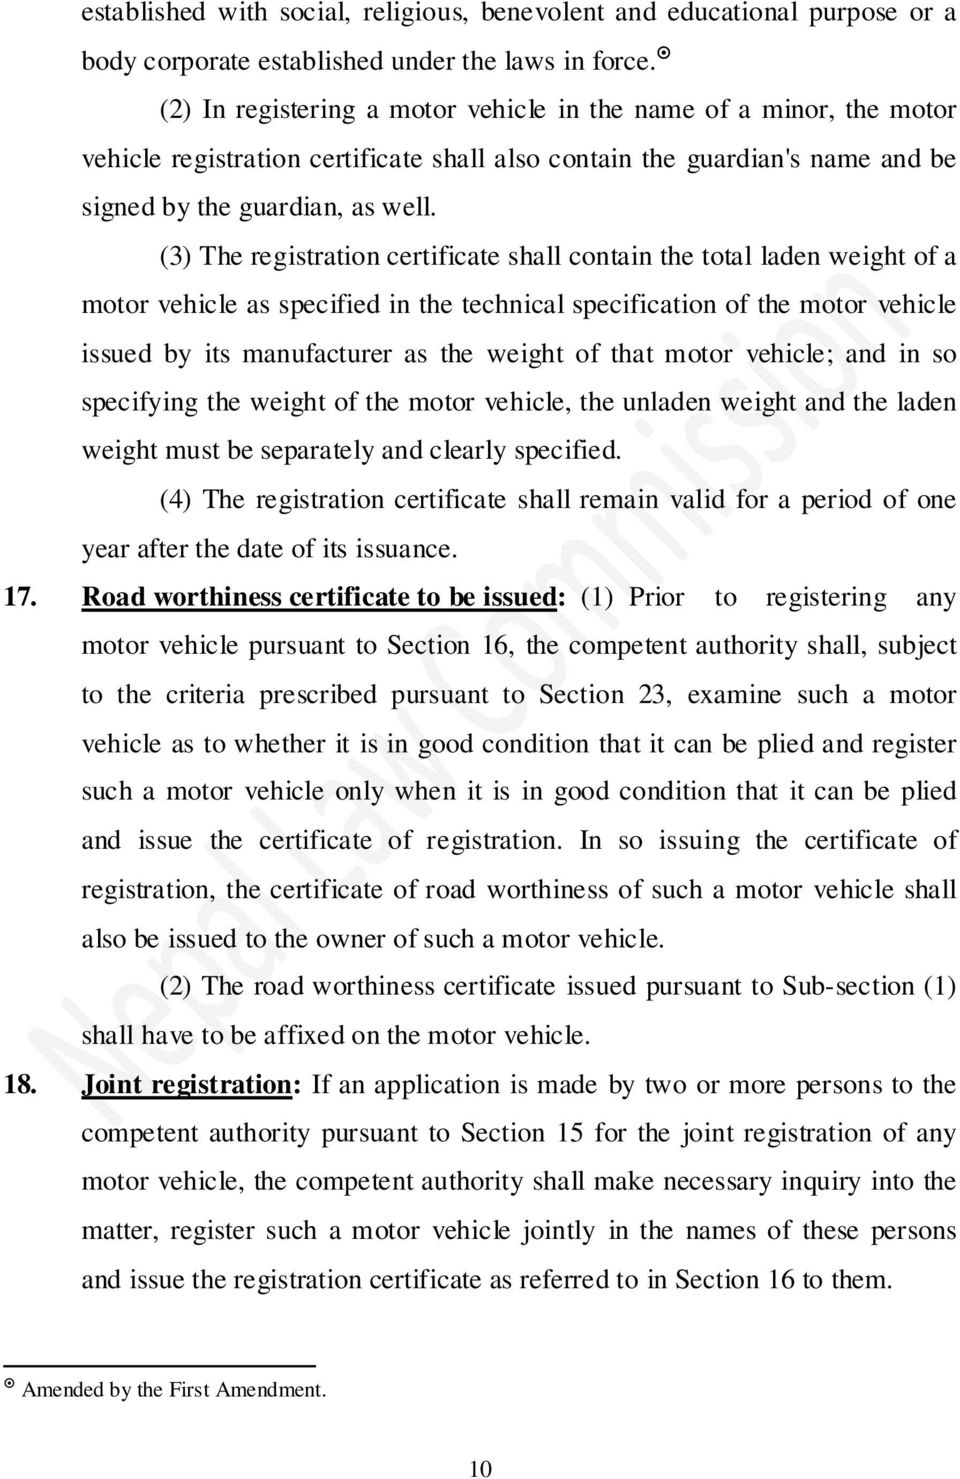 (3) The registration certificate shall contain the total laden weight of a motor vehicle as specified in the technical specification of the motor vehicle issued by its manufacturer as the weight of